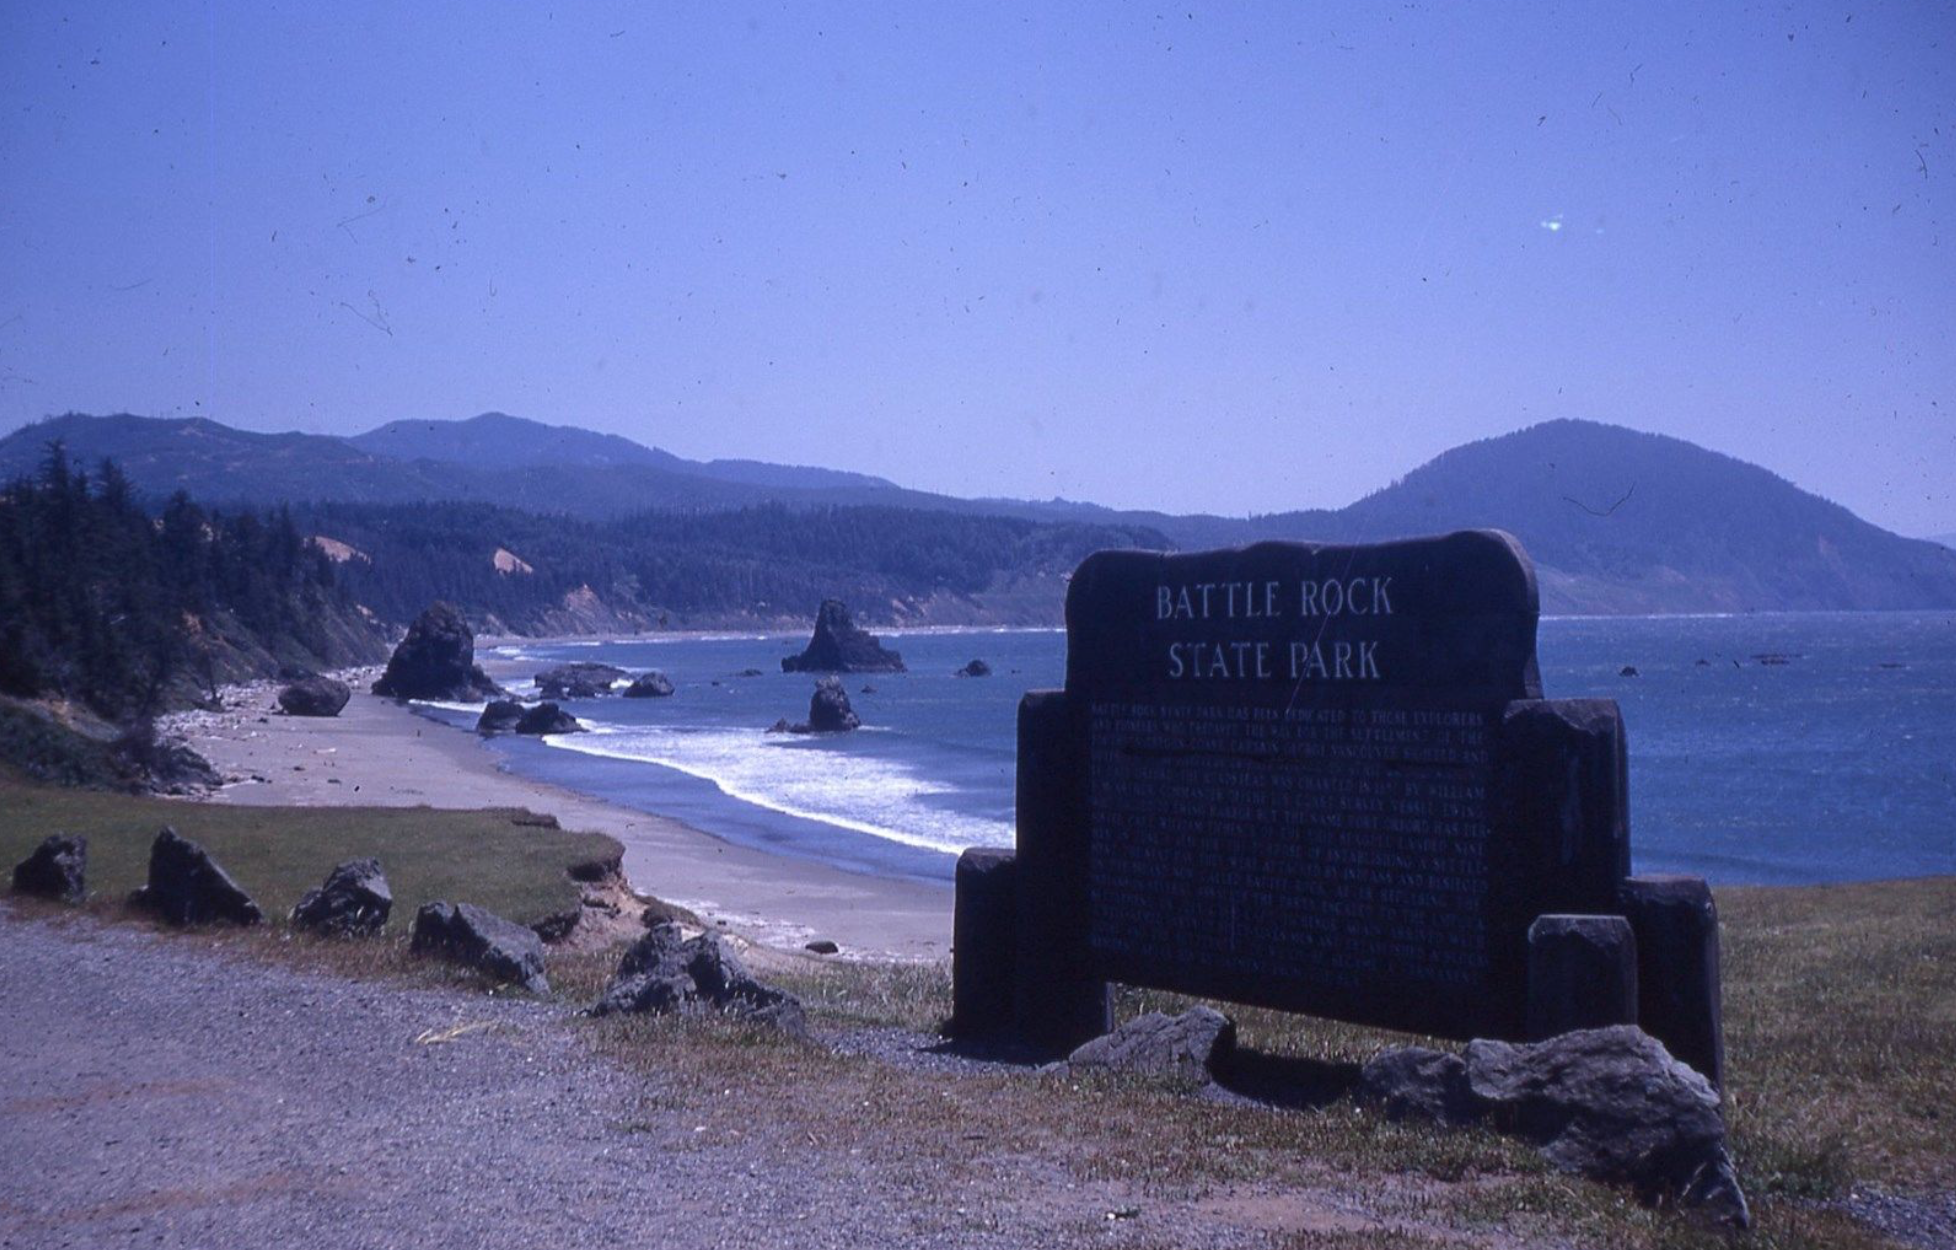 The previous sign when it was still called Battle Rock State Park, 1968.